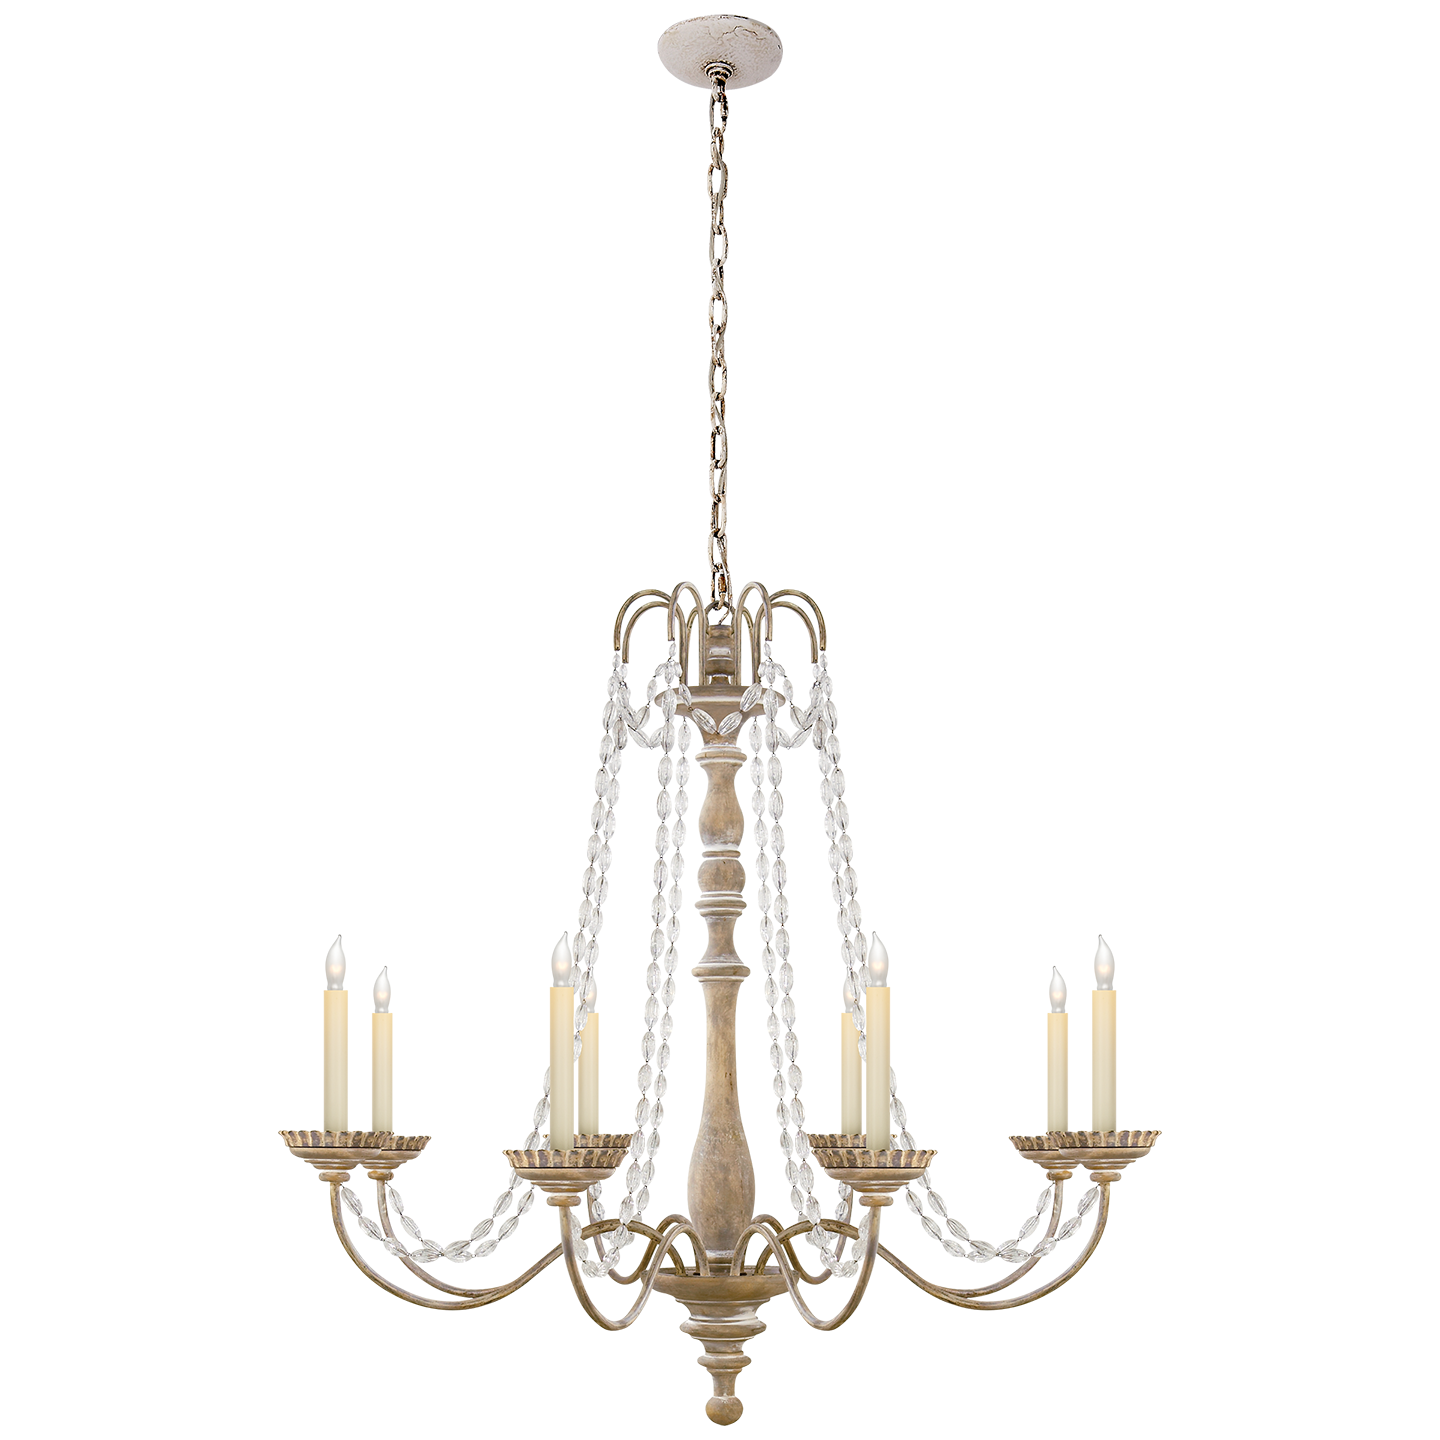 Flanders Chandelier by E F Chapman $735 Belgian White with